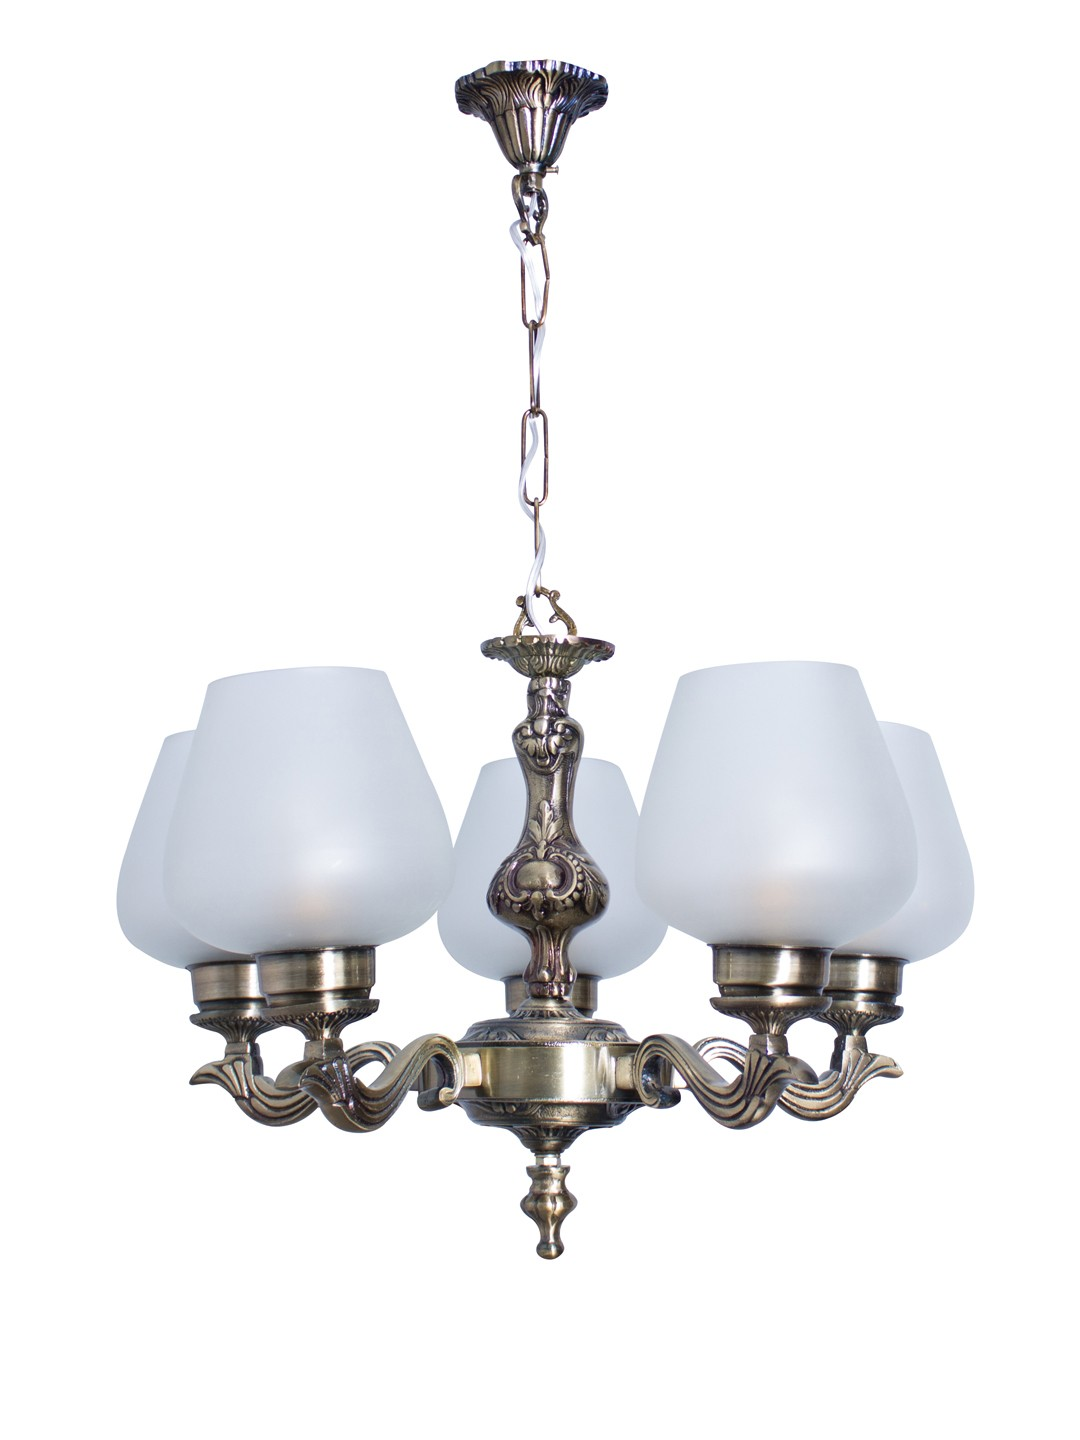 Allure Antique Finish Small 5 Light Chandelier